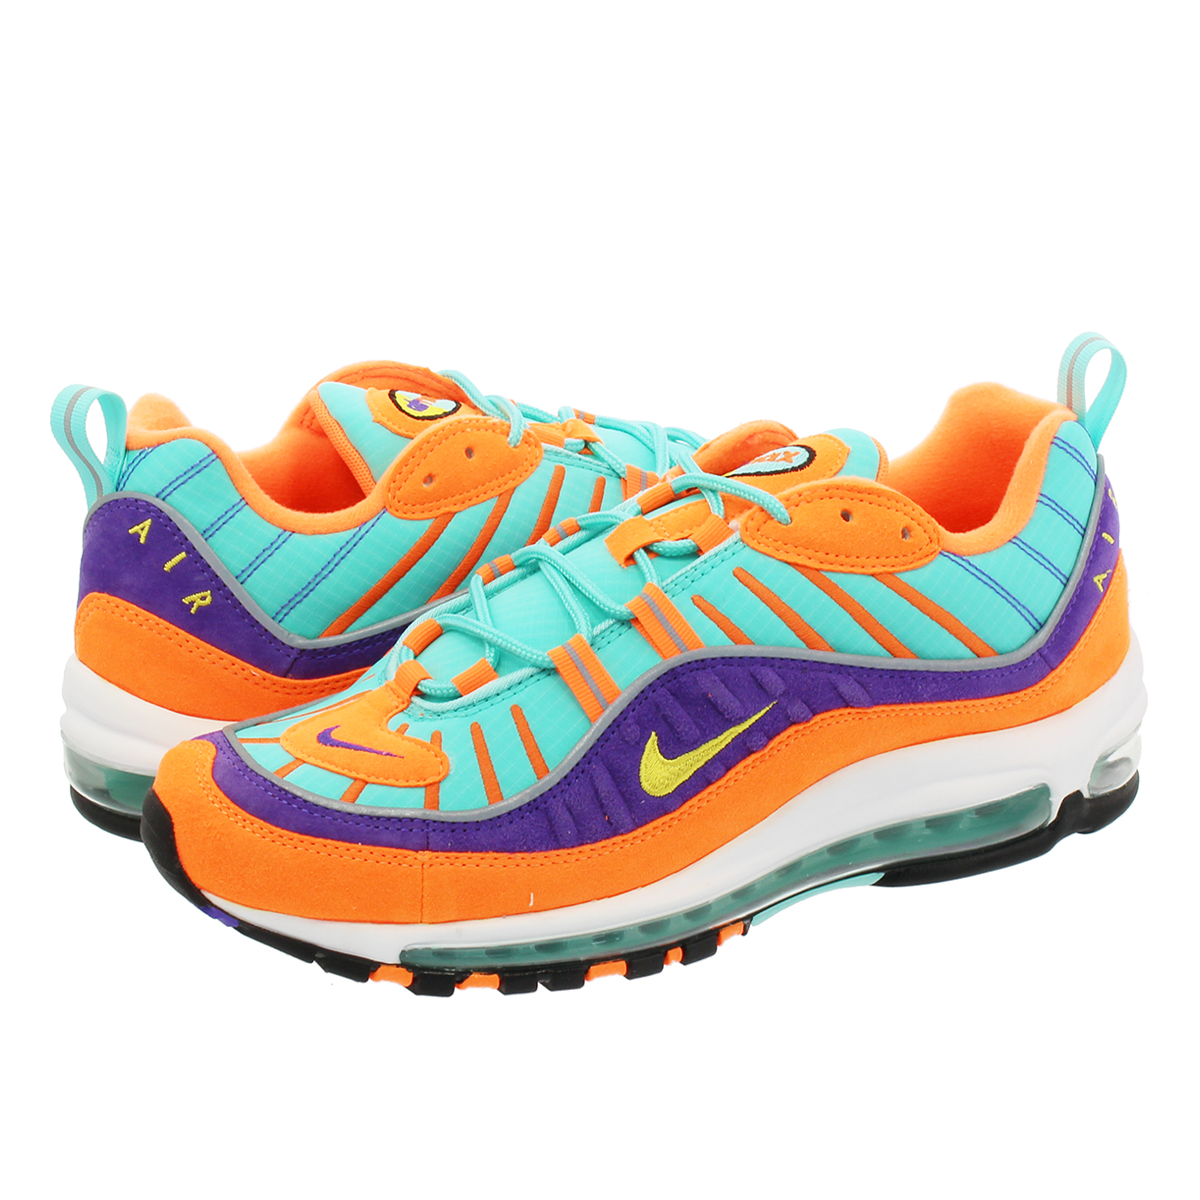 separation shoes bce20 7ed7f NIKE AIR MAX 98 QS Kie Ney AMAX 98 QS CONE TOUR YELLOW HYPER GRAPE 924,462- 800